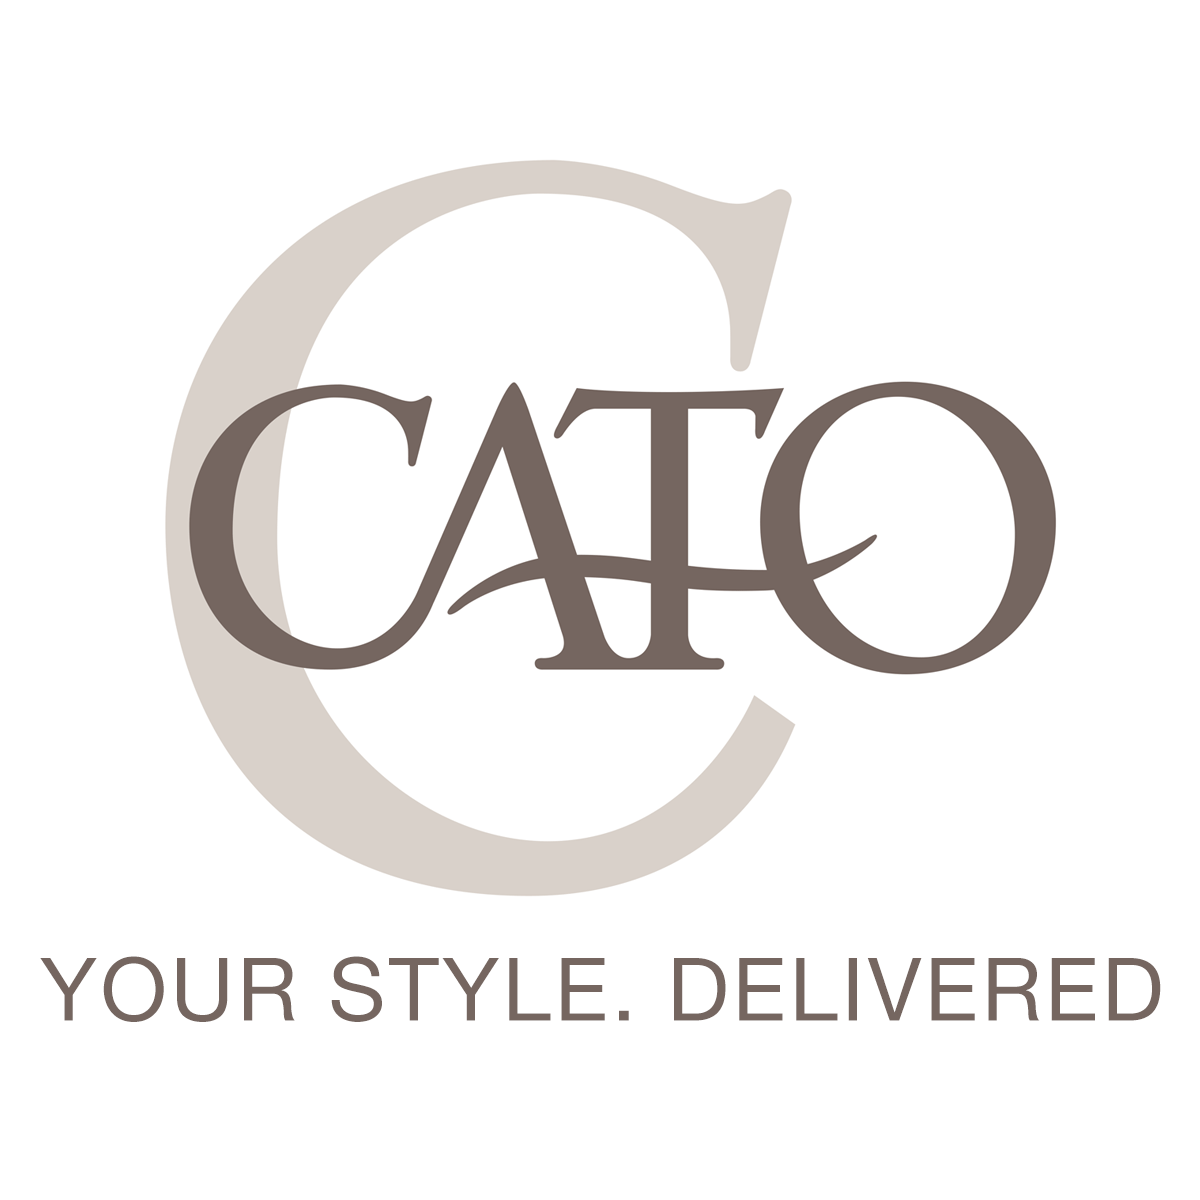 Where are cato clothes made ?